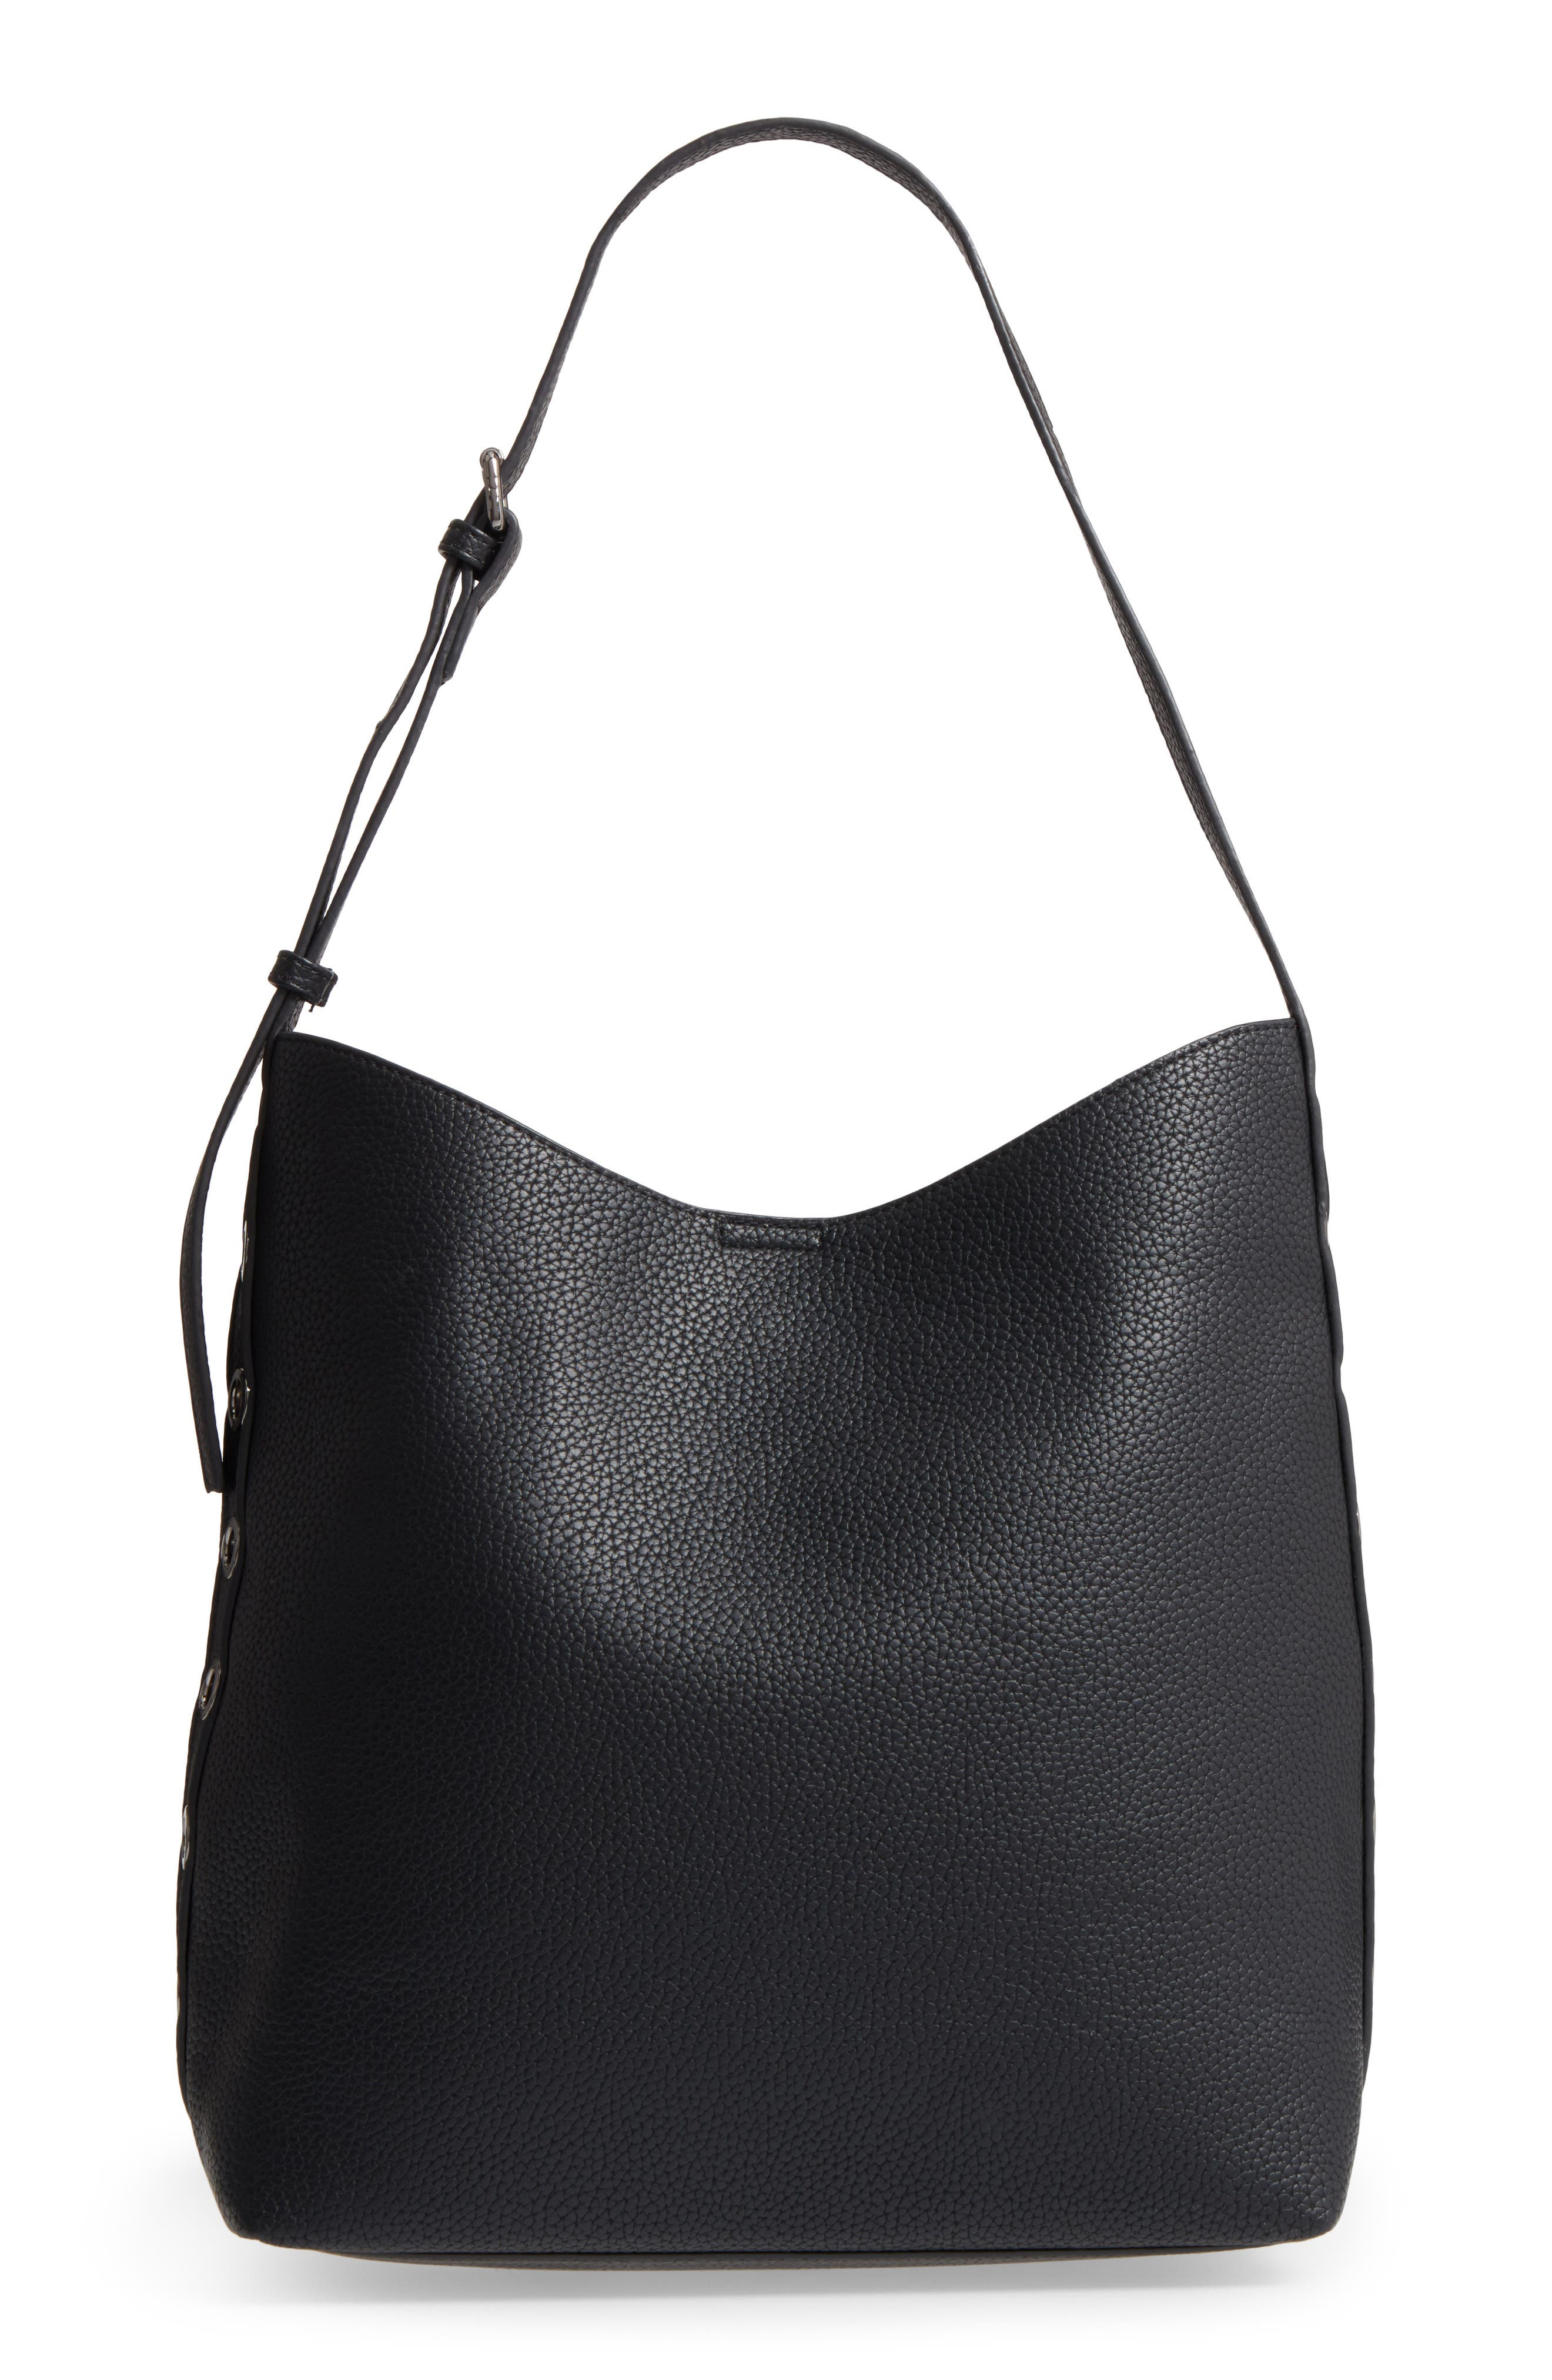 Samara Faux Leather Shoulder Bag,                         Main,                         color, Black